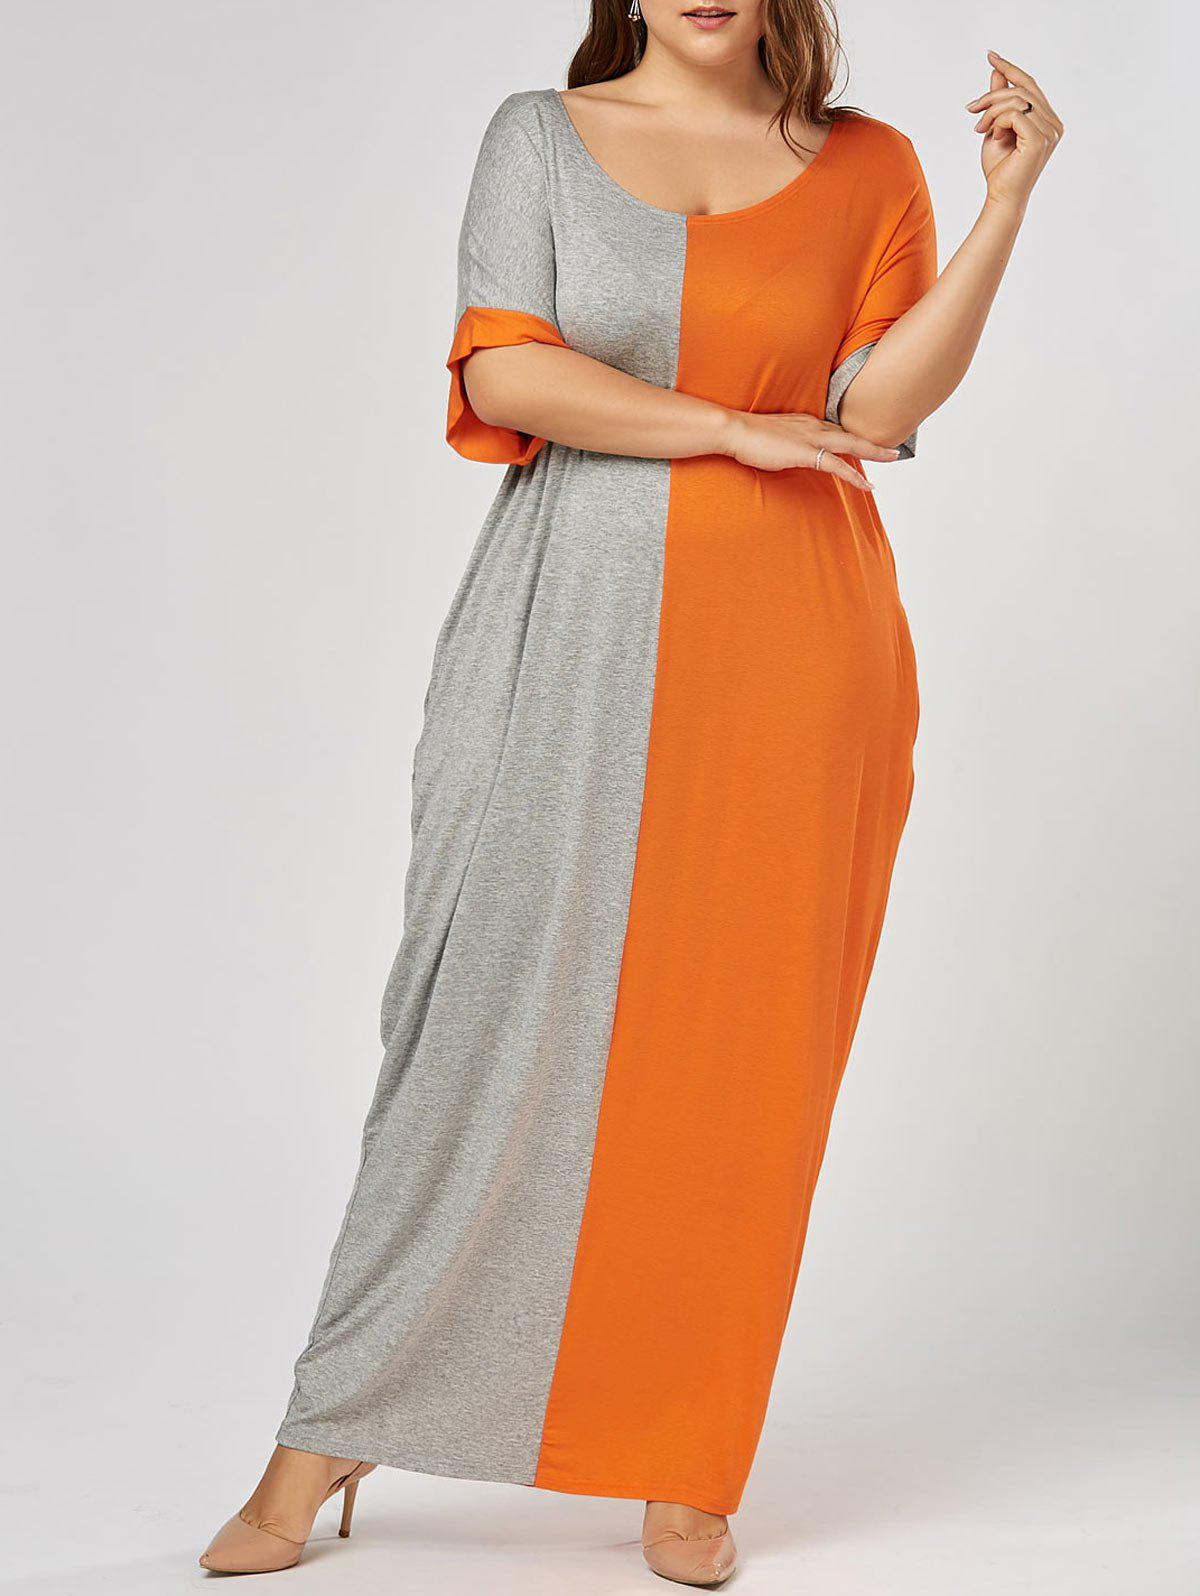 Color Block Plus Size Tee Maxi DressWOMEN<br><br>Size: XL; Color: GREY AND ORANGE; Style: Casual; Material: Cotton,Cotton Blend,Polyester; Silhouette: Straight; Dresses Length: Ankle-Length; Neckline: Scoop Neck; Sleeve Length: Short Sleeves; Pattern Type: Others,Print; With Belt: No; Season: Spring,Summer; Weight: 0.4300kg; Package Contents: 1 x Dress;